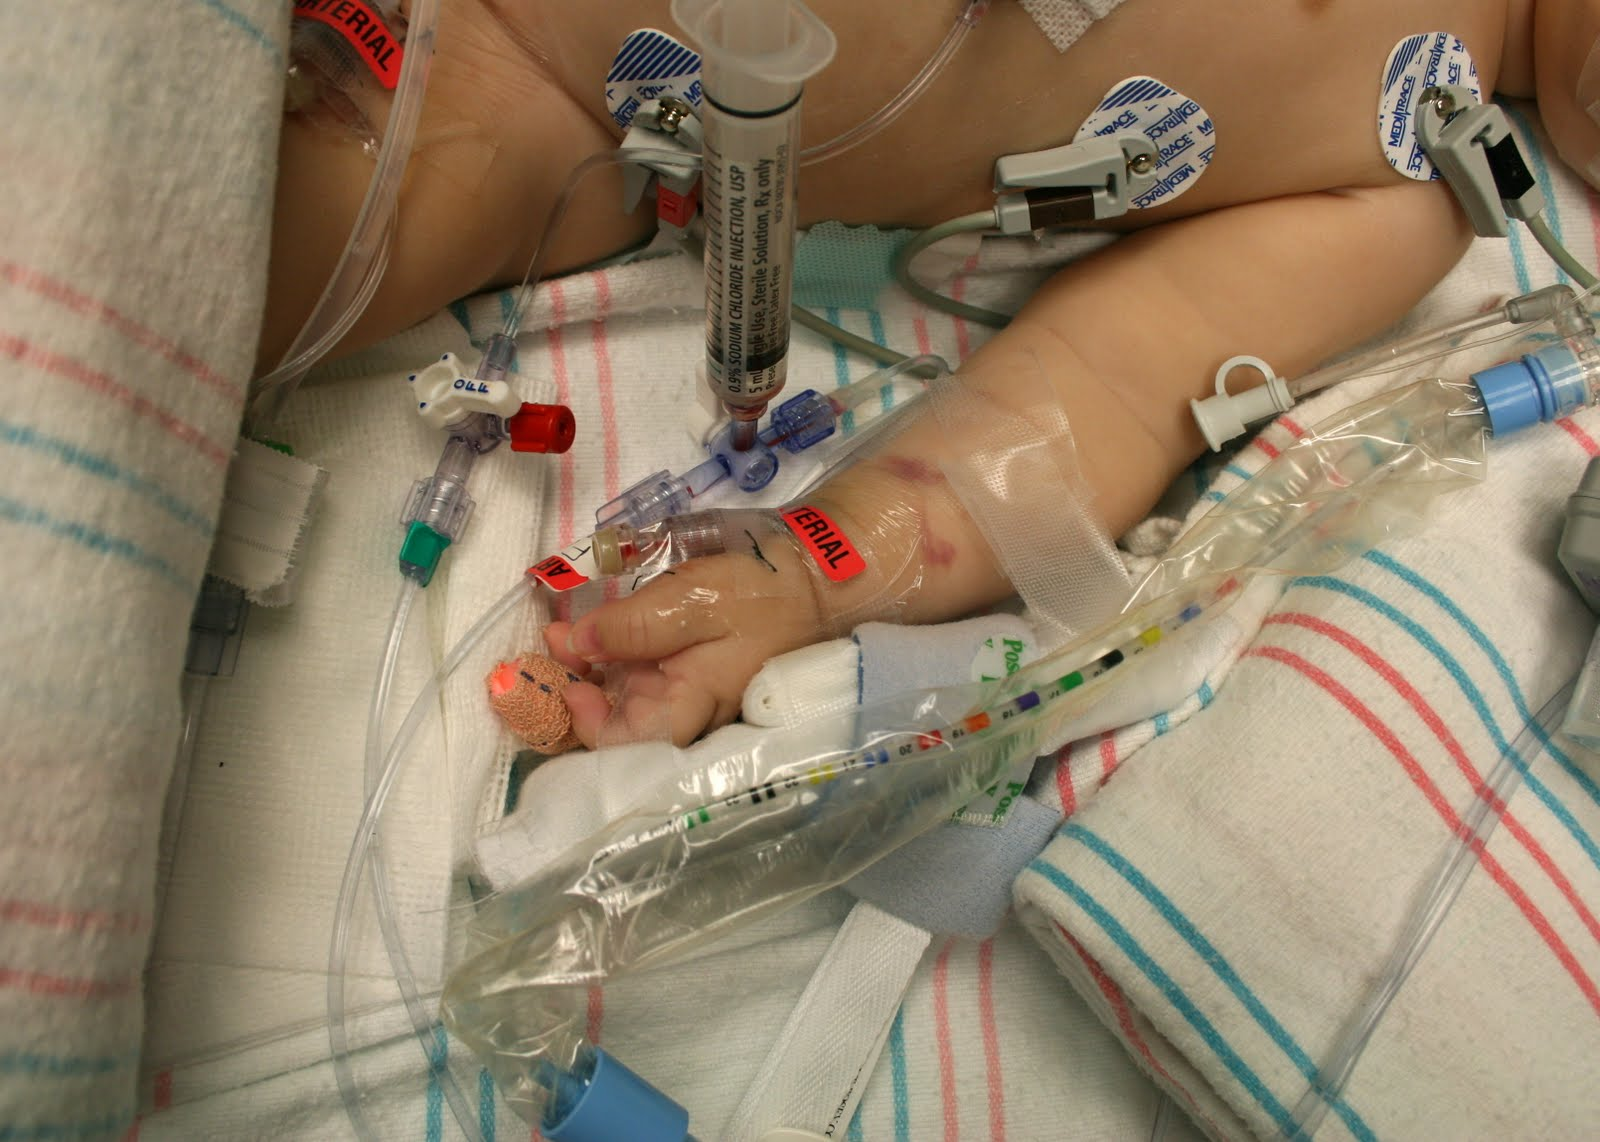 A Line Arterial Monitoring : A story of two moms surgery in photos